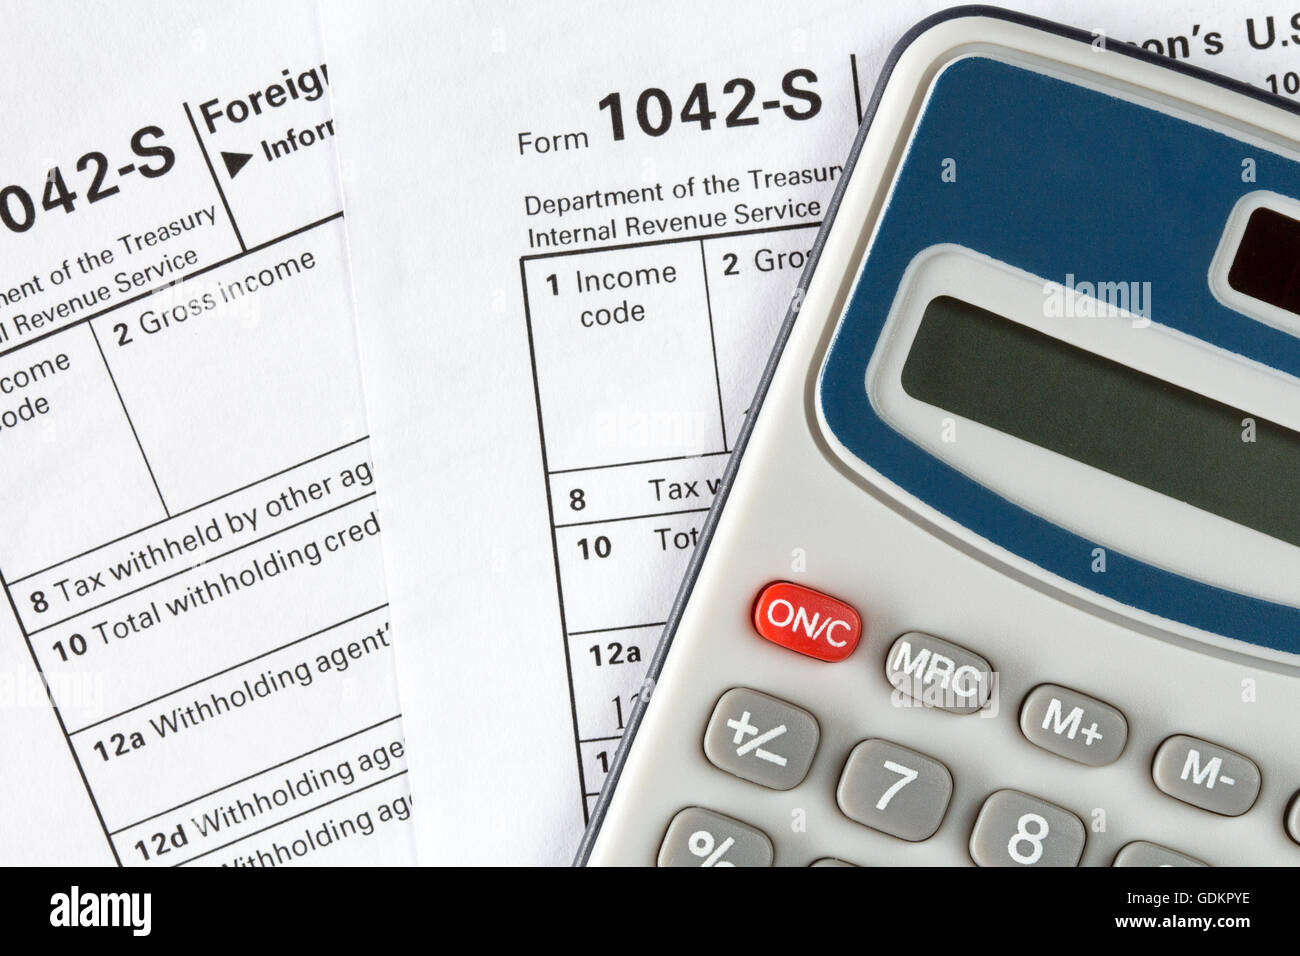 Tax Form 1042 Stock Photos & Tax Form 1042 Stock Images - Alamy